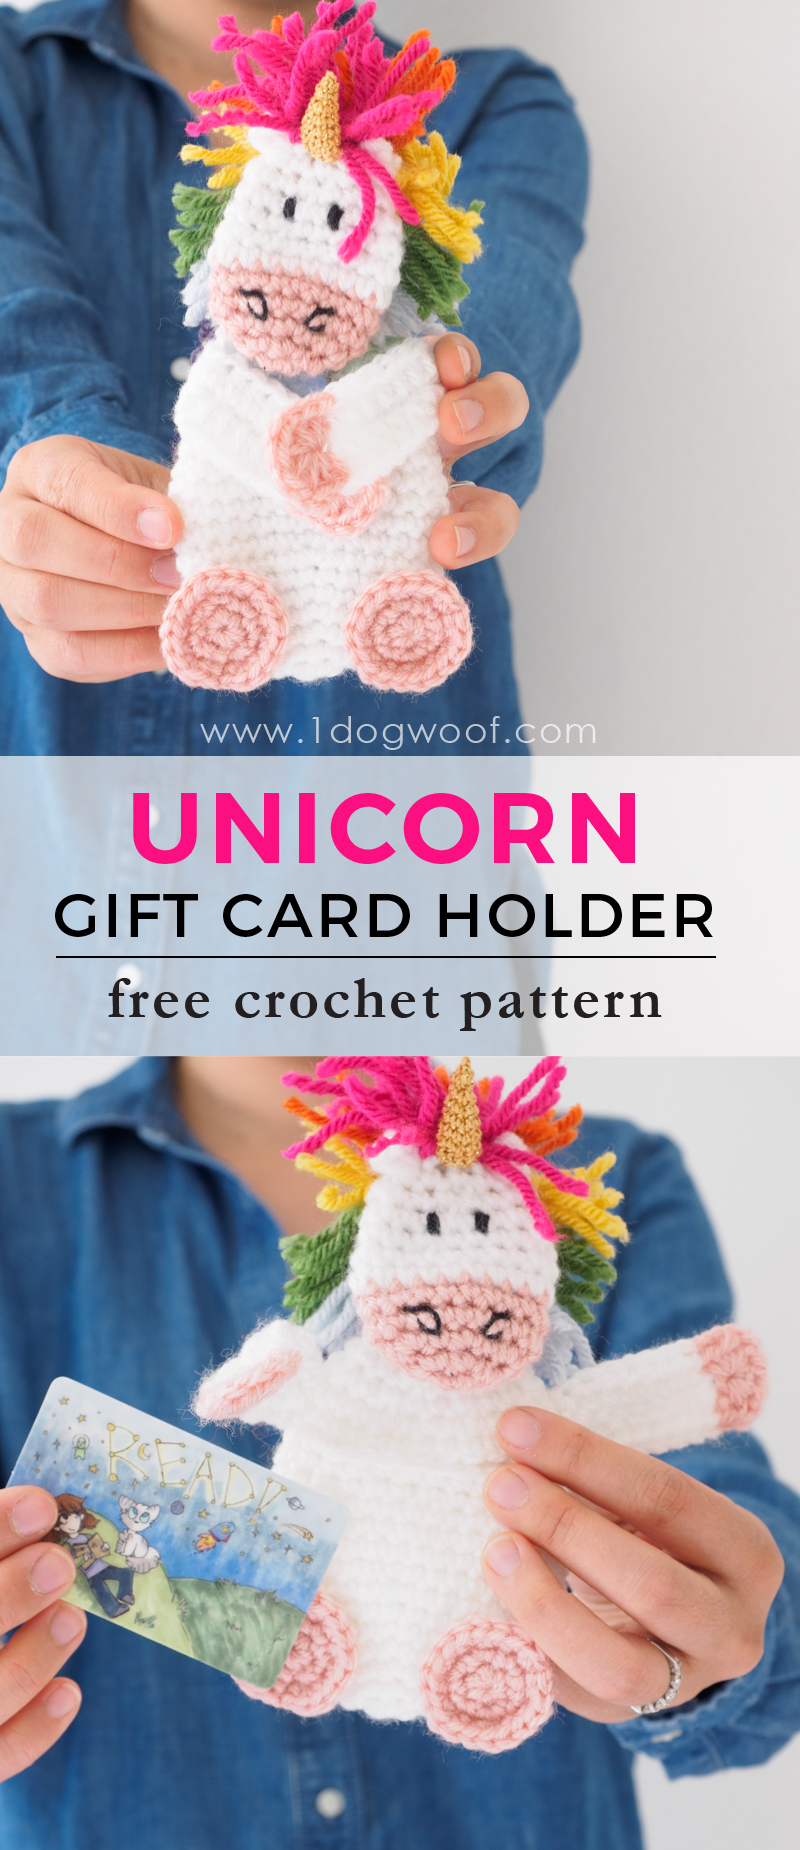 Crochet unicorn gift card holder one dog woof make your gift extra special with an adorable crochet unicorn gift card holder free crochet reheart Choice Image